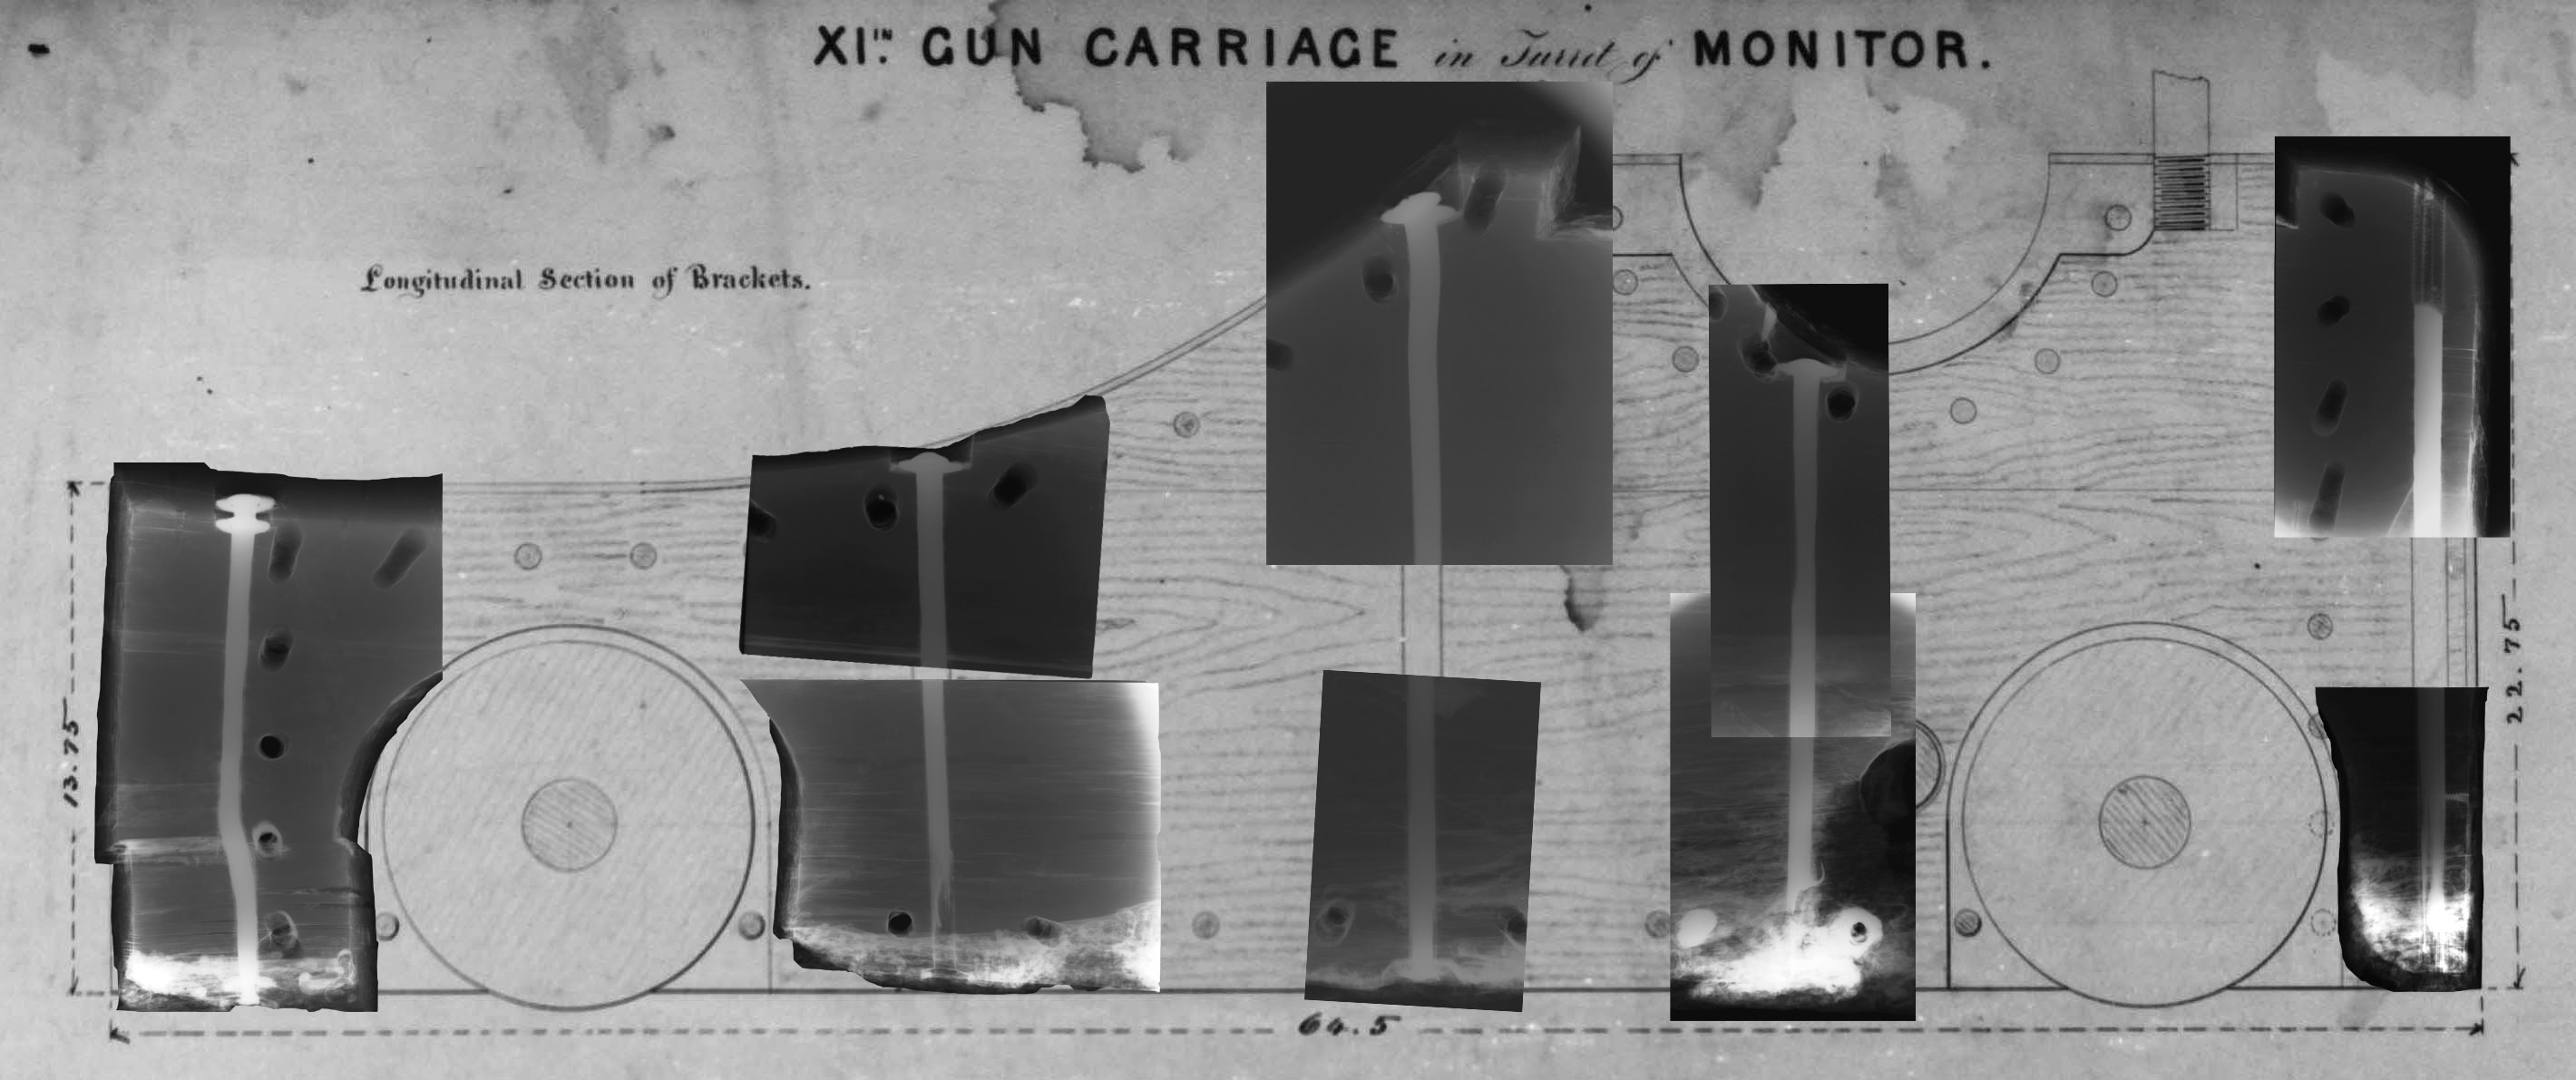 The gun carriage of the USS <em>Monitor</em>